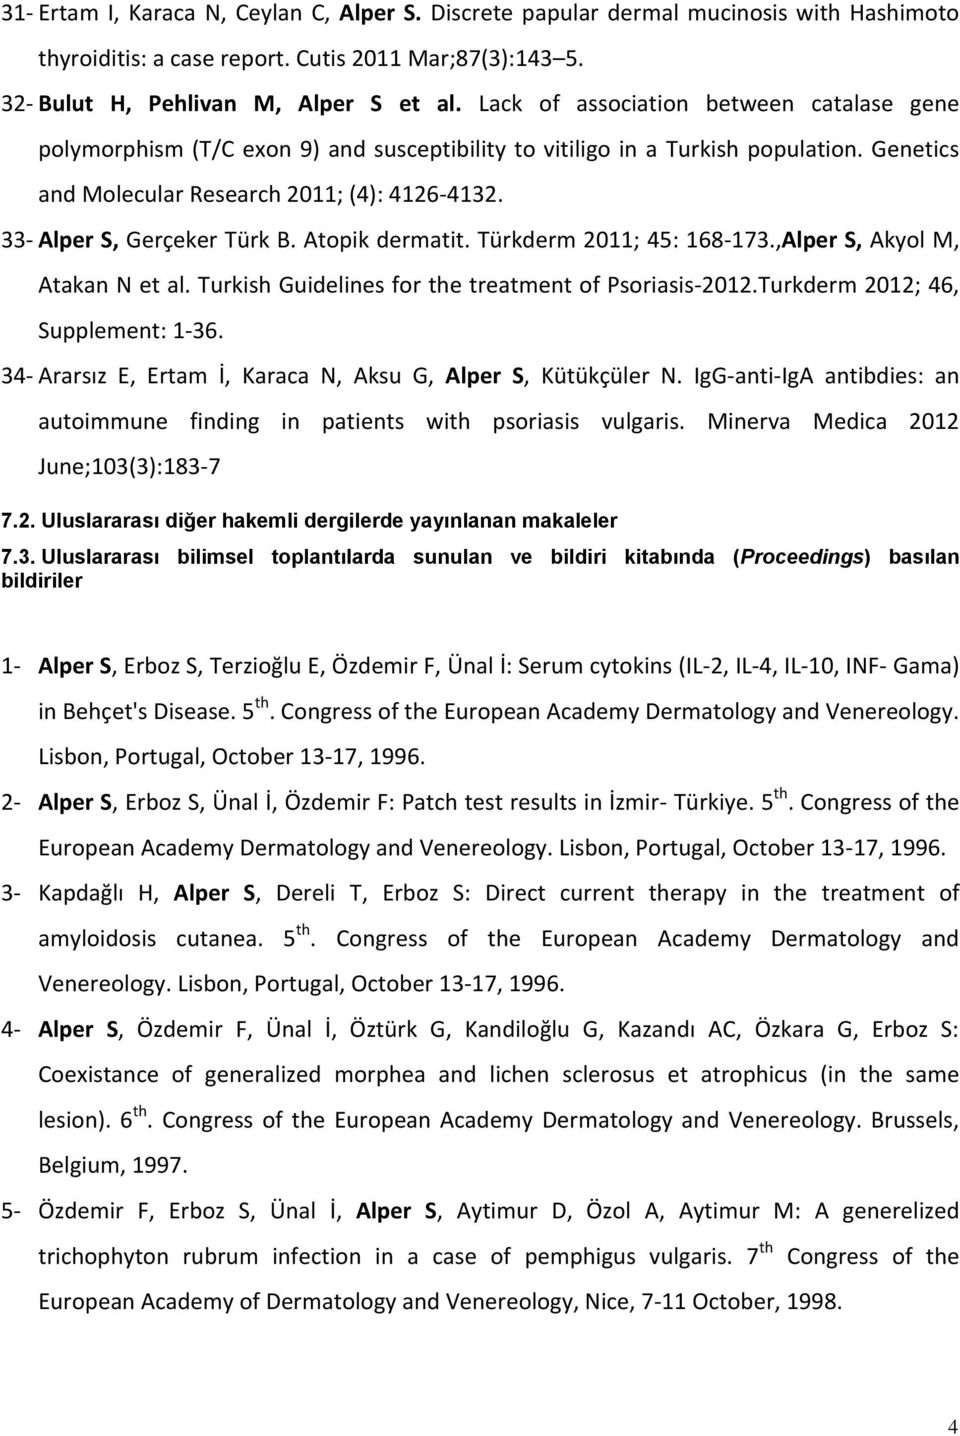 33- Alper S, Gerçeker Türk B. Atopik dermatit. Türkderm 20; 45: 68-73.,Alper S, Akyol M, Atakan N et al. Turkish Guidelines for the treatment of Psoriasis-202.Turkderm 202; 46, Supplement: -36.